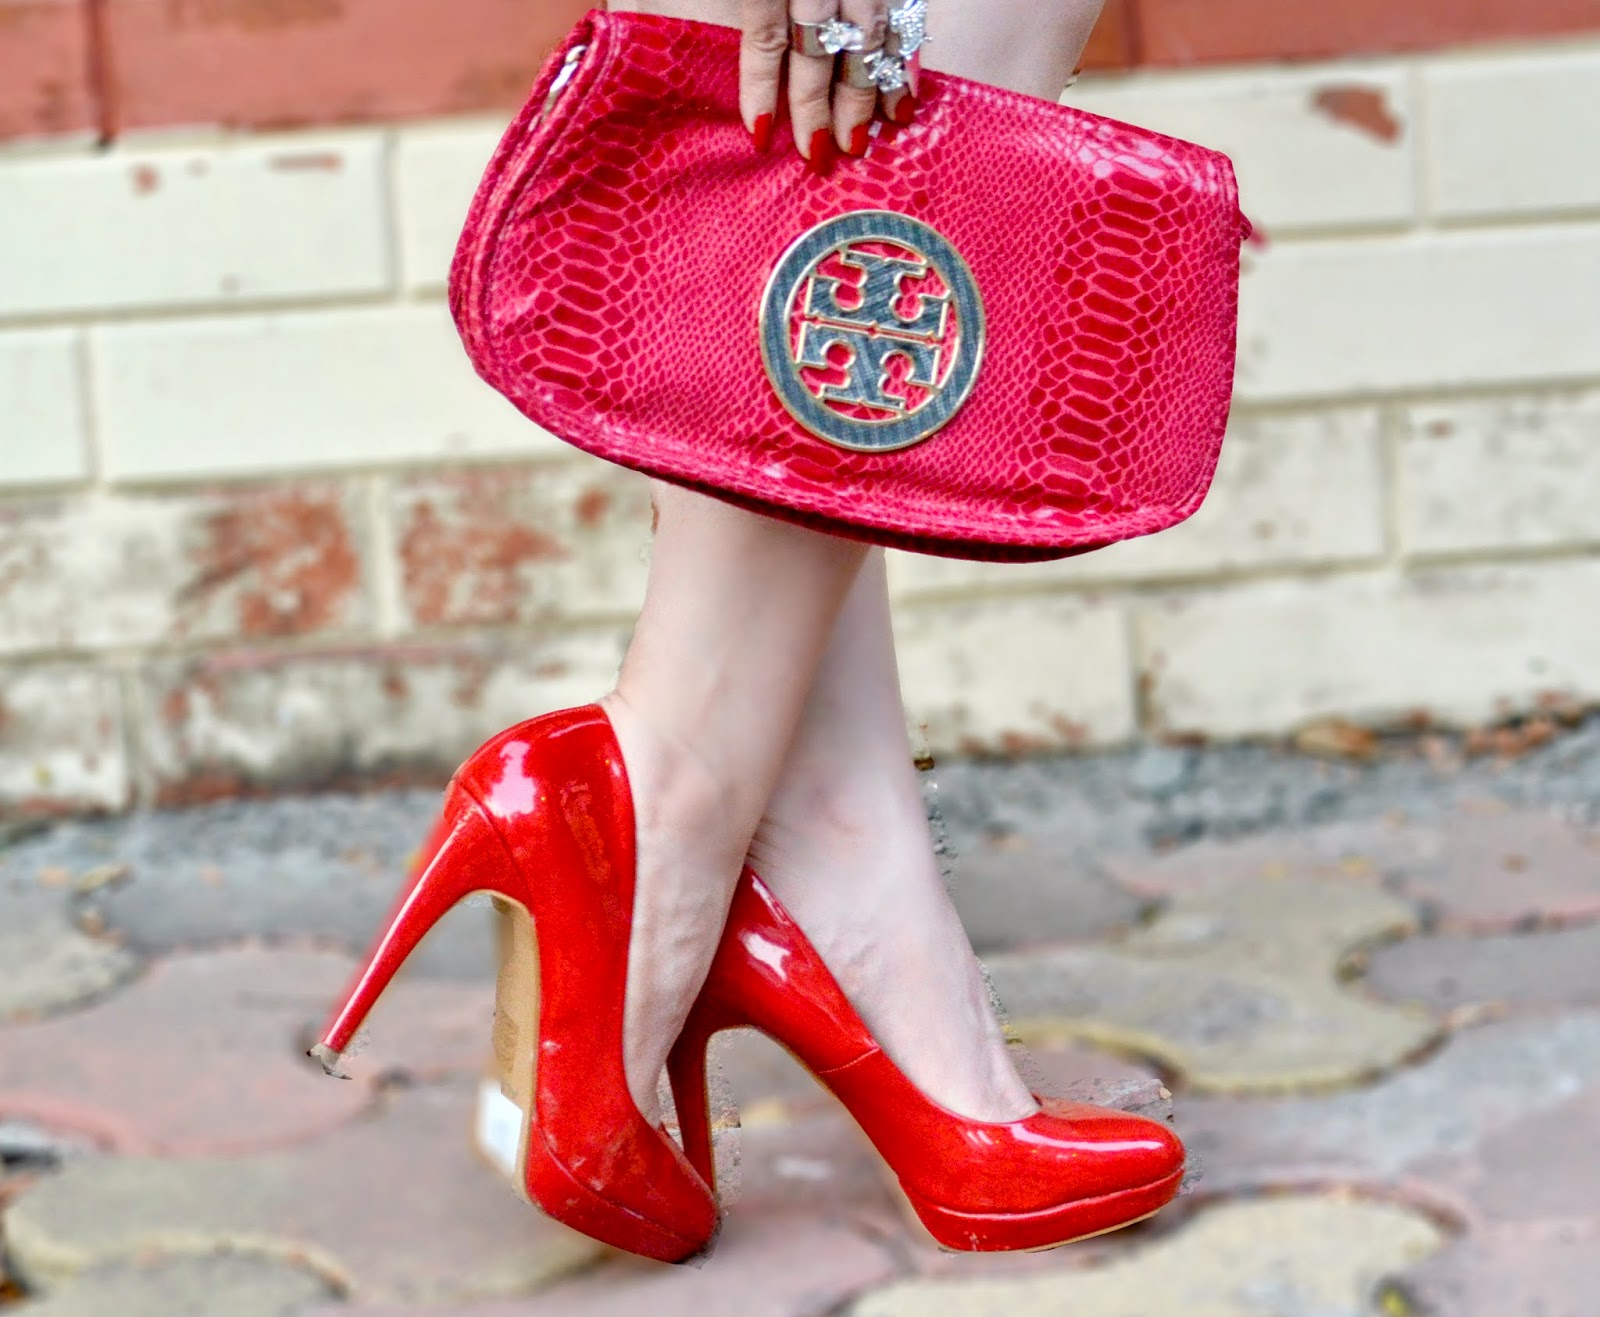 Red Aldo Heels & Red Snakeskin Tory Burch Clutch